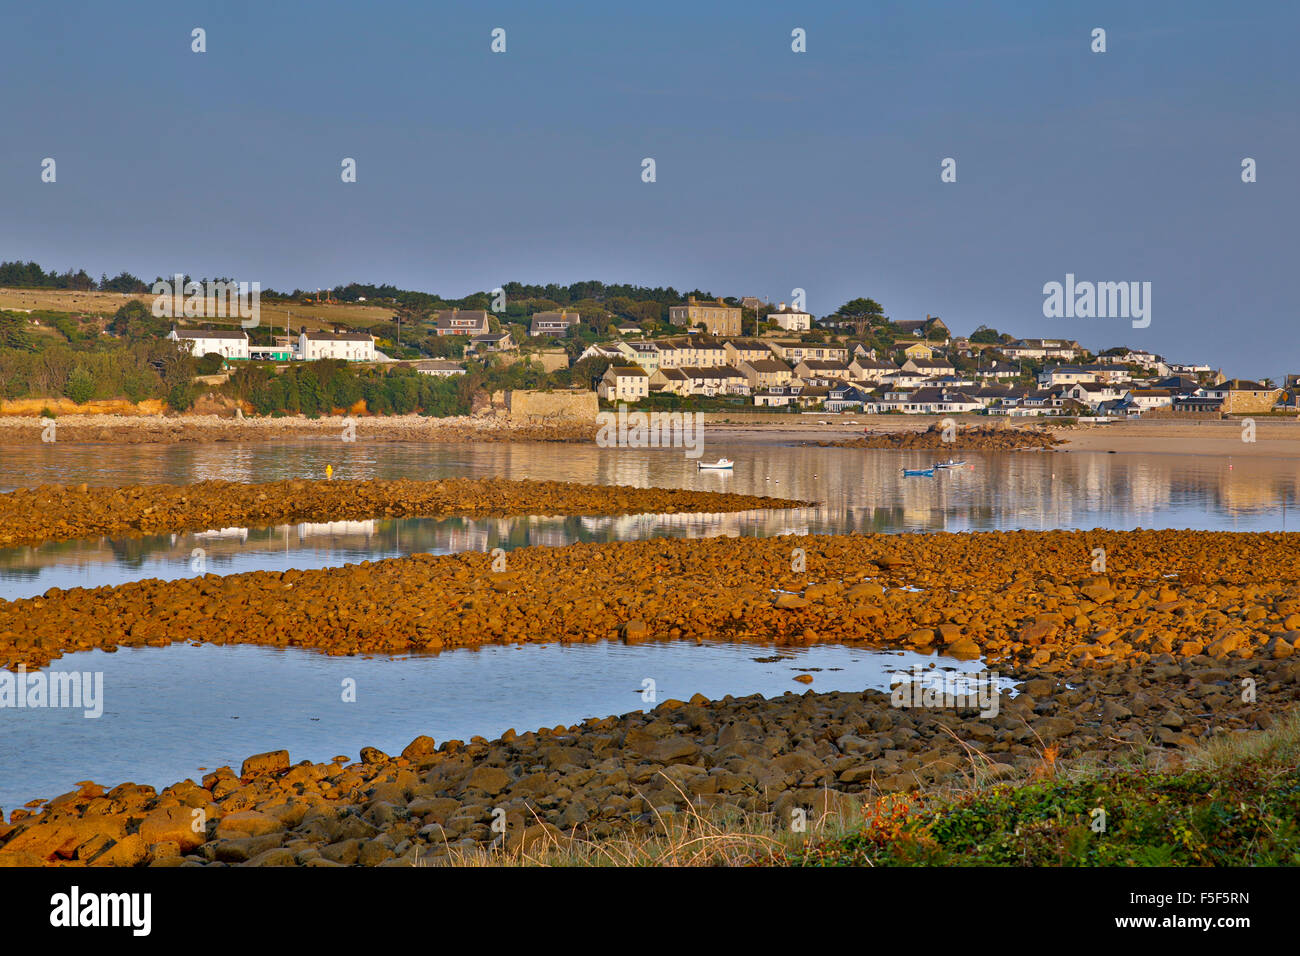 Hugh Town; Porth Cressa; St Mary's; Isles of Scilly; UK - Stock Image